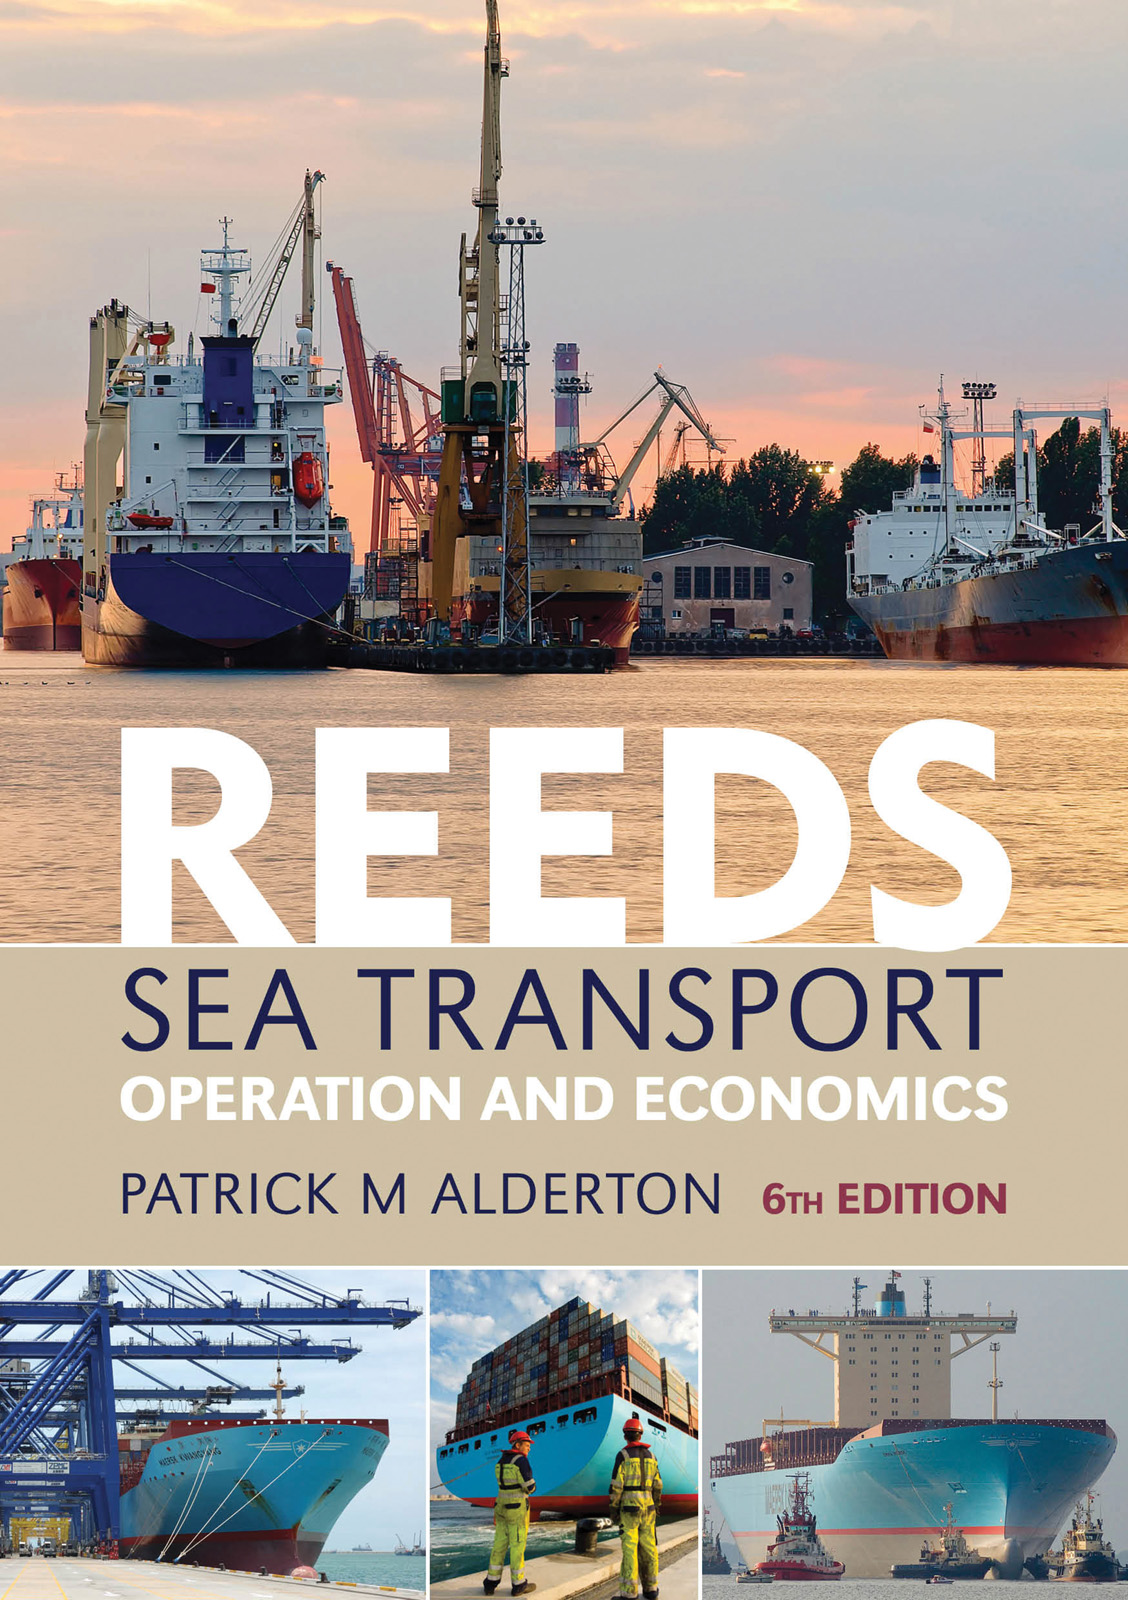 Reeds Sea Transport Operation and Economics